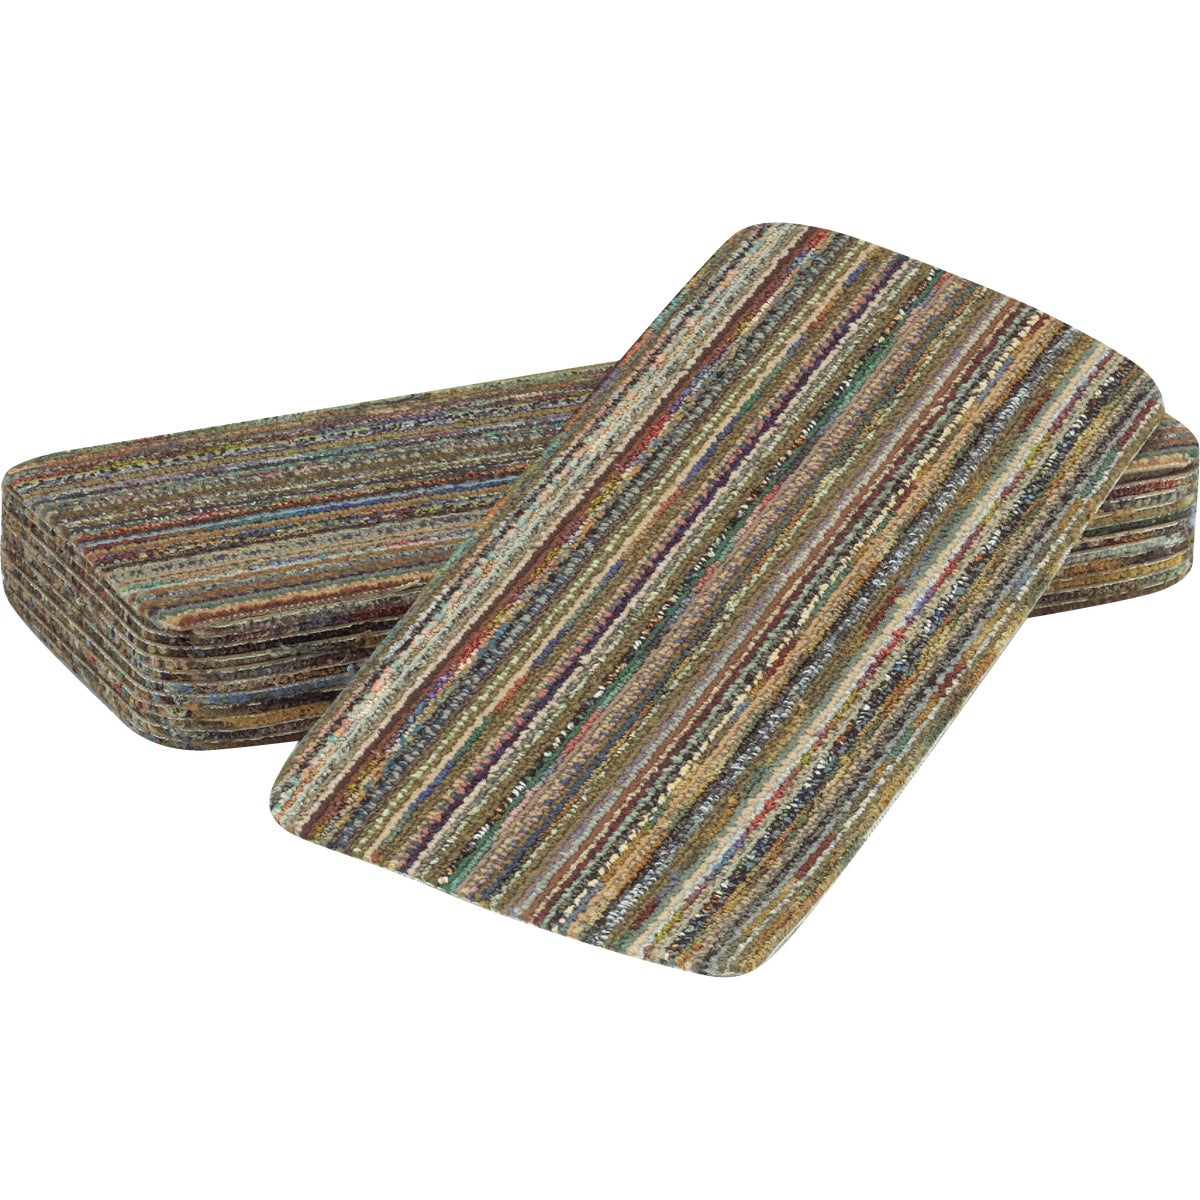 CARPET STAIR TREADS - 10183 by Dynasty Carpet & Rug